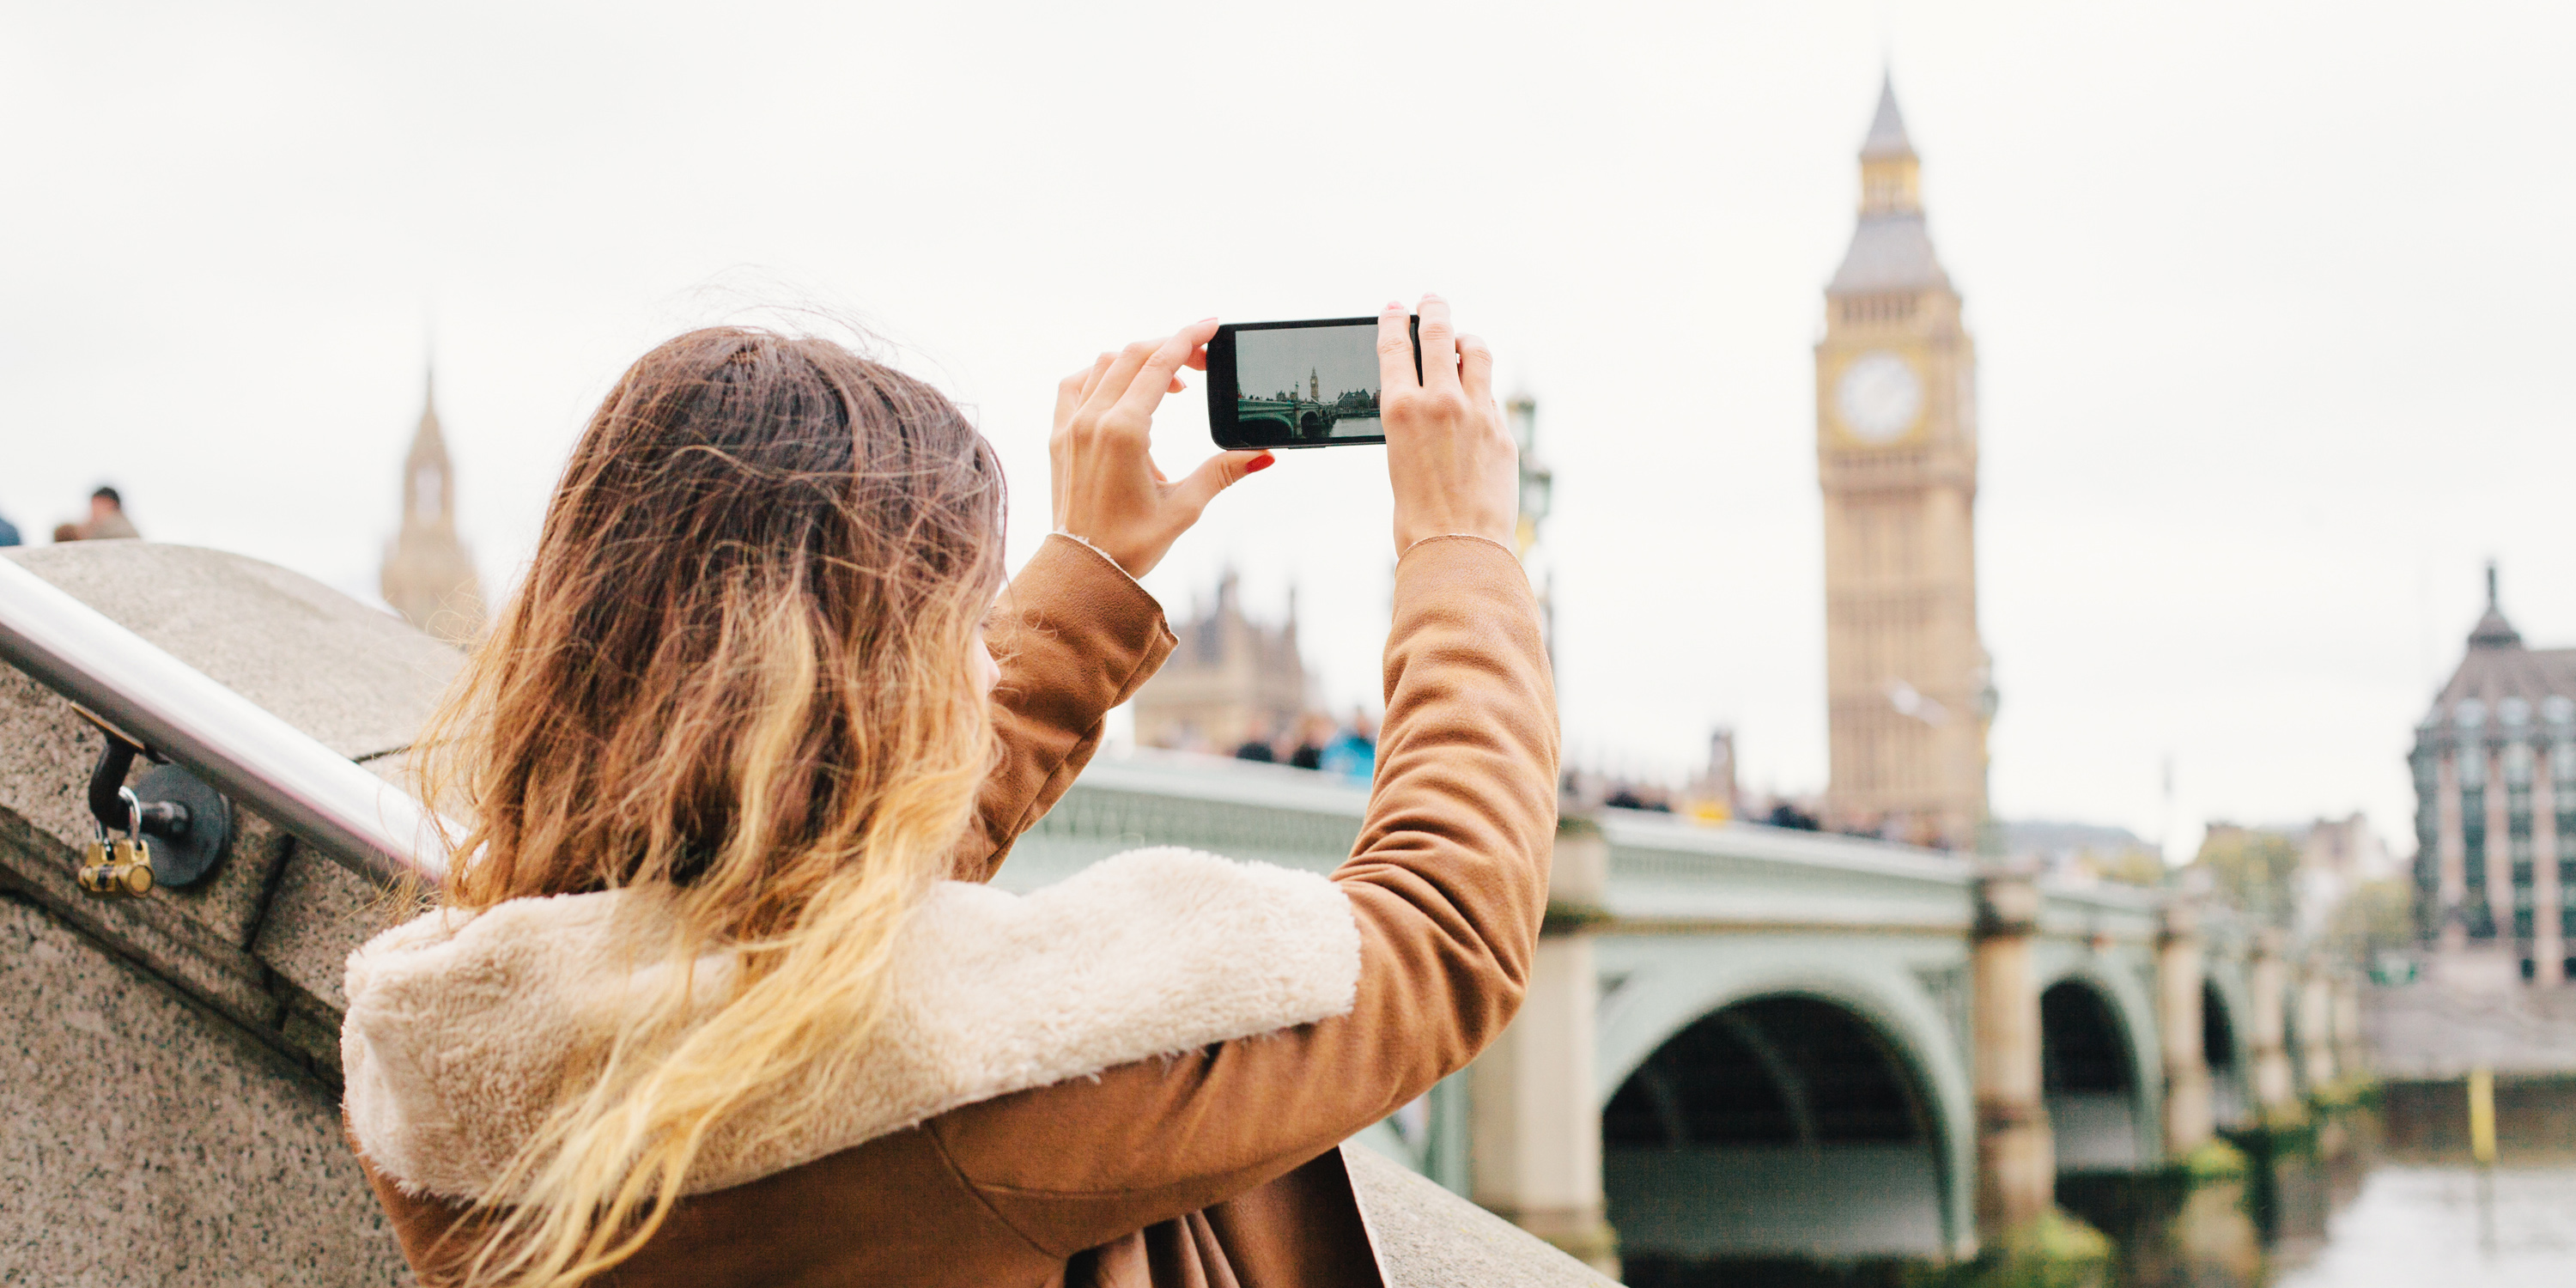 young woman taking picture of Big Ben on phone